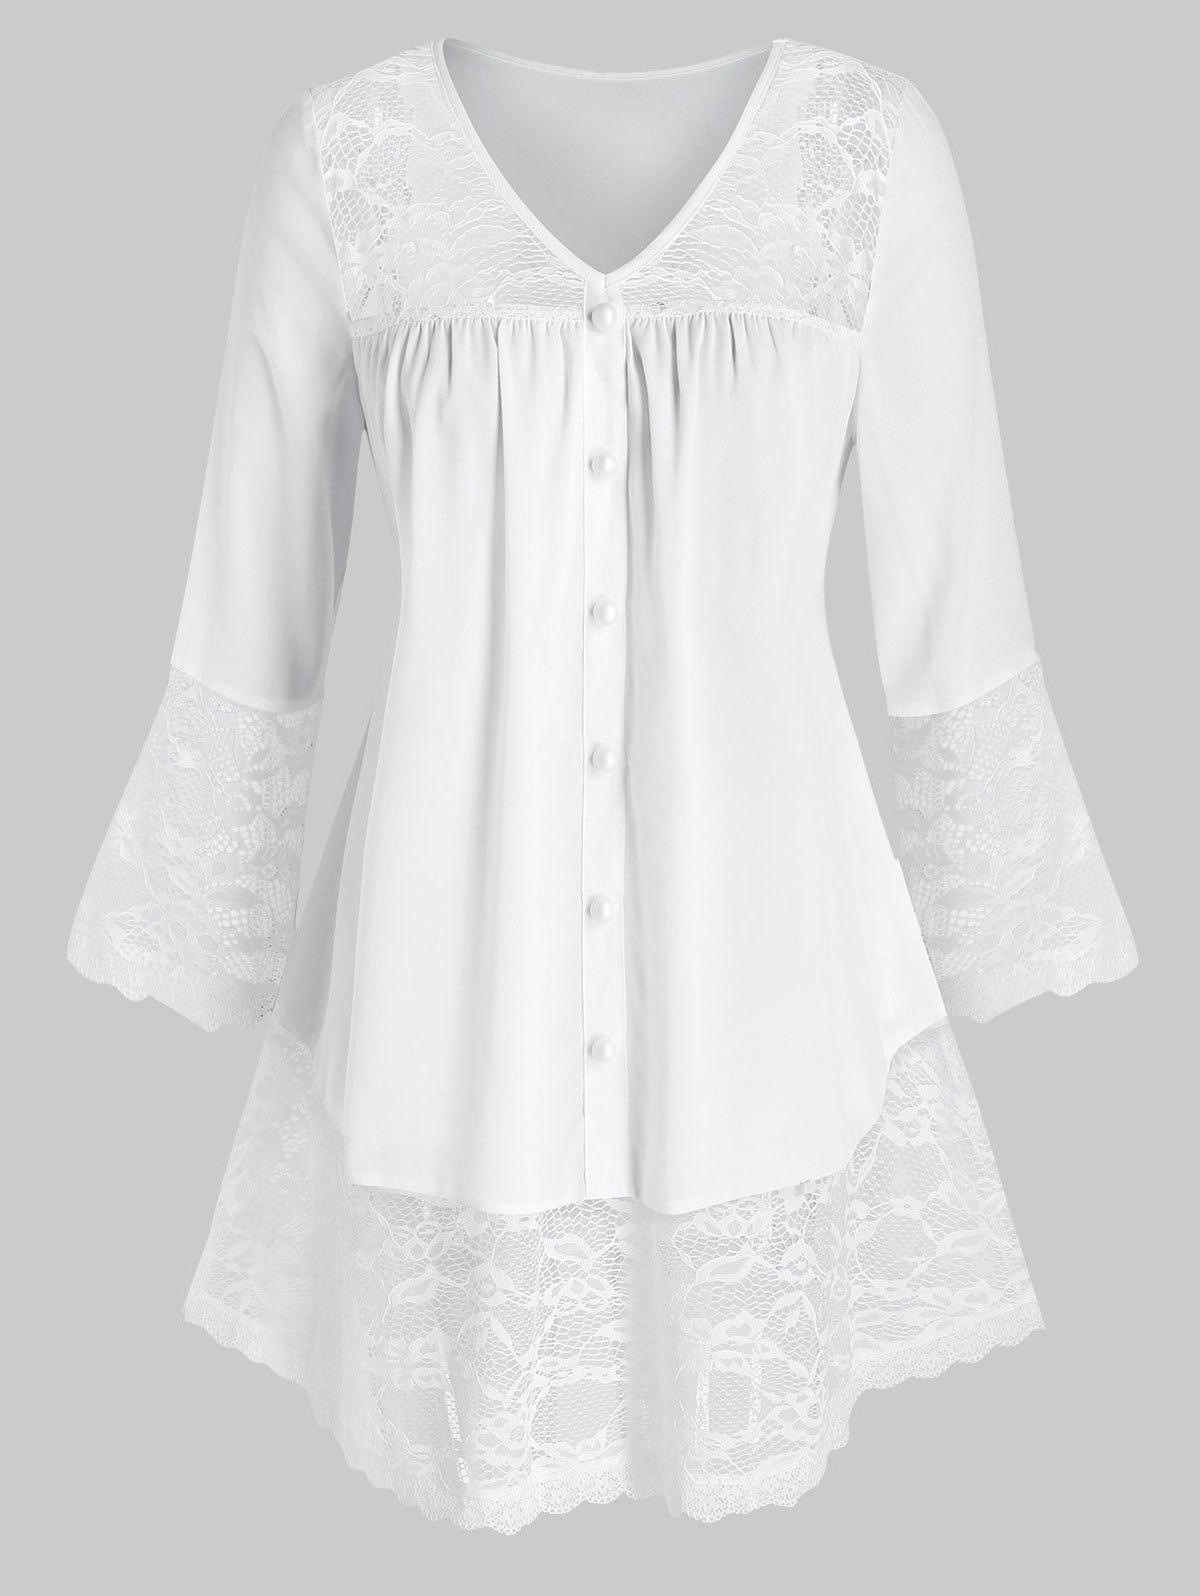 Plus Size Lace Inserted Buttons Tunic Blouse - WHITE 5X